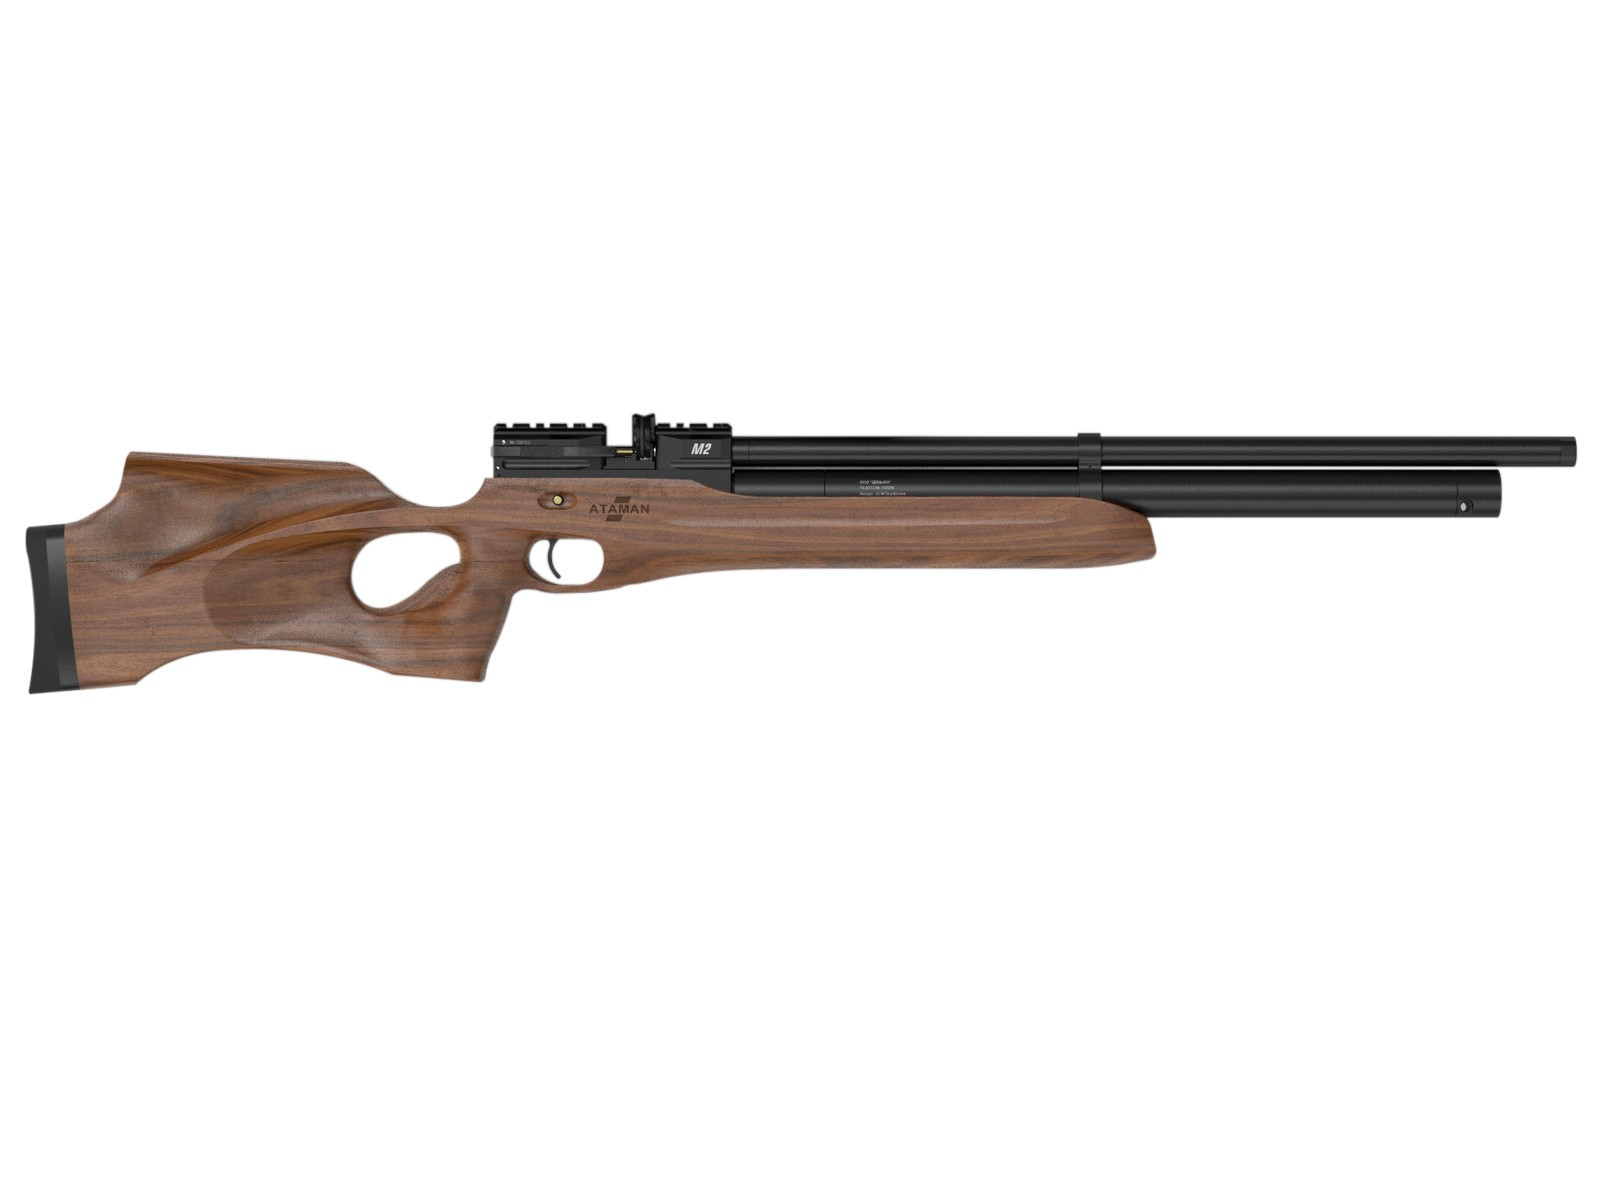 Ataman M2 Ergonomic PCP Air Rifle